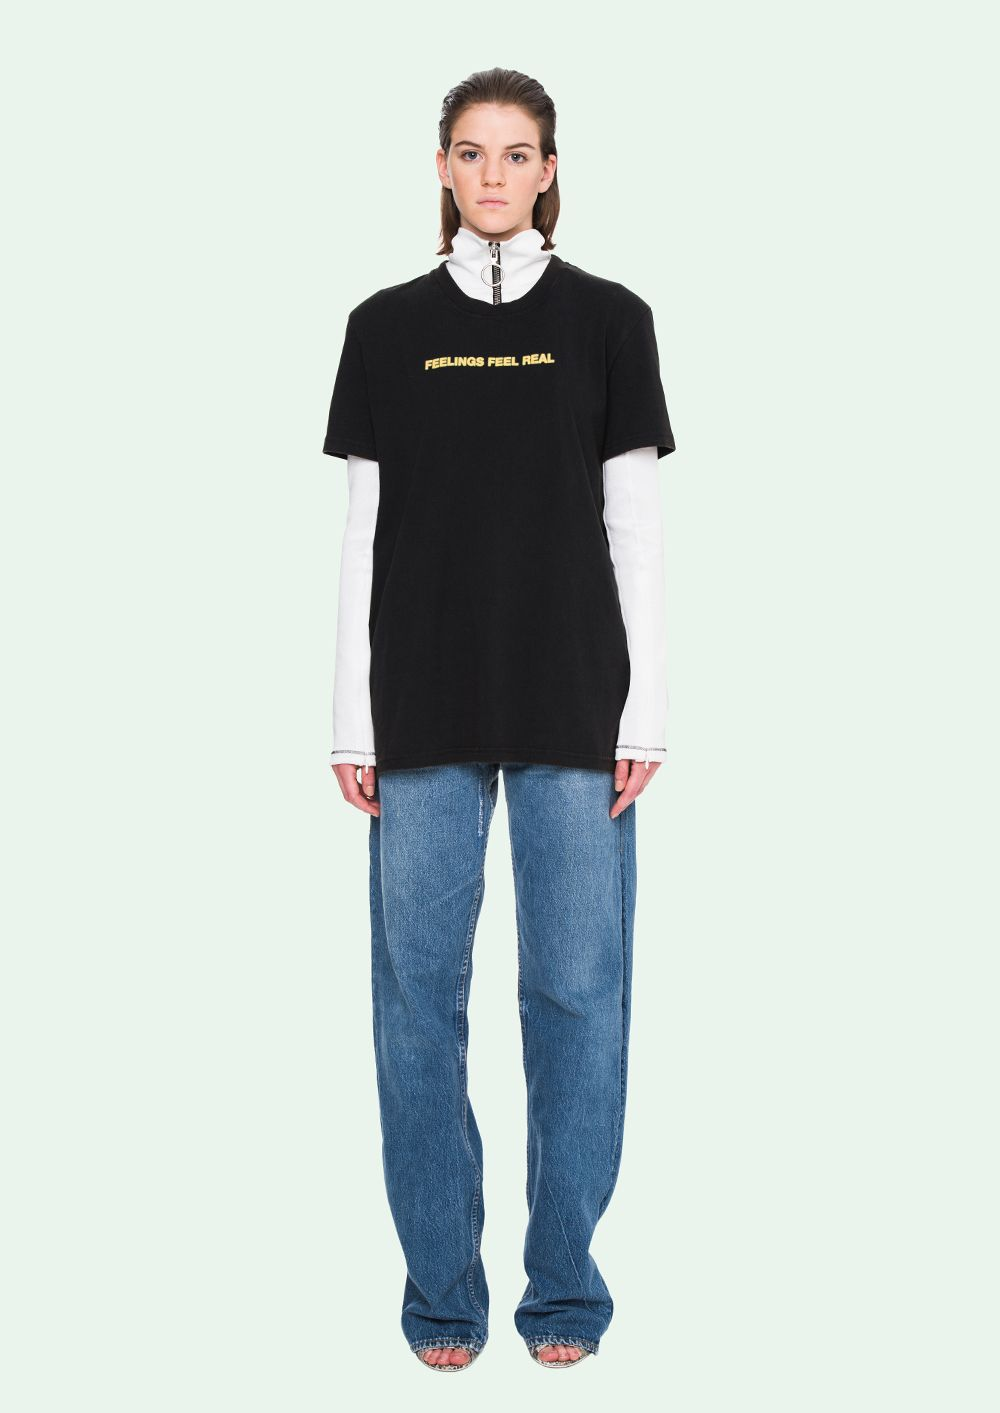 Feeling Real Tee in Black Off-white With Credit Card Sale Online Factory Sale Comfortable Online Discount Best Free Shipping Pre Order Nl4lqB